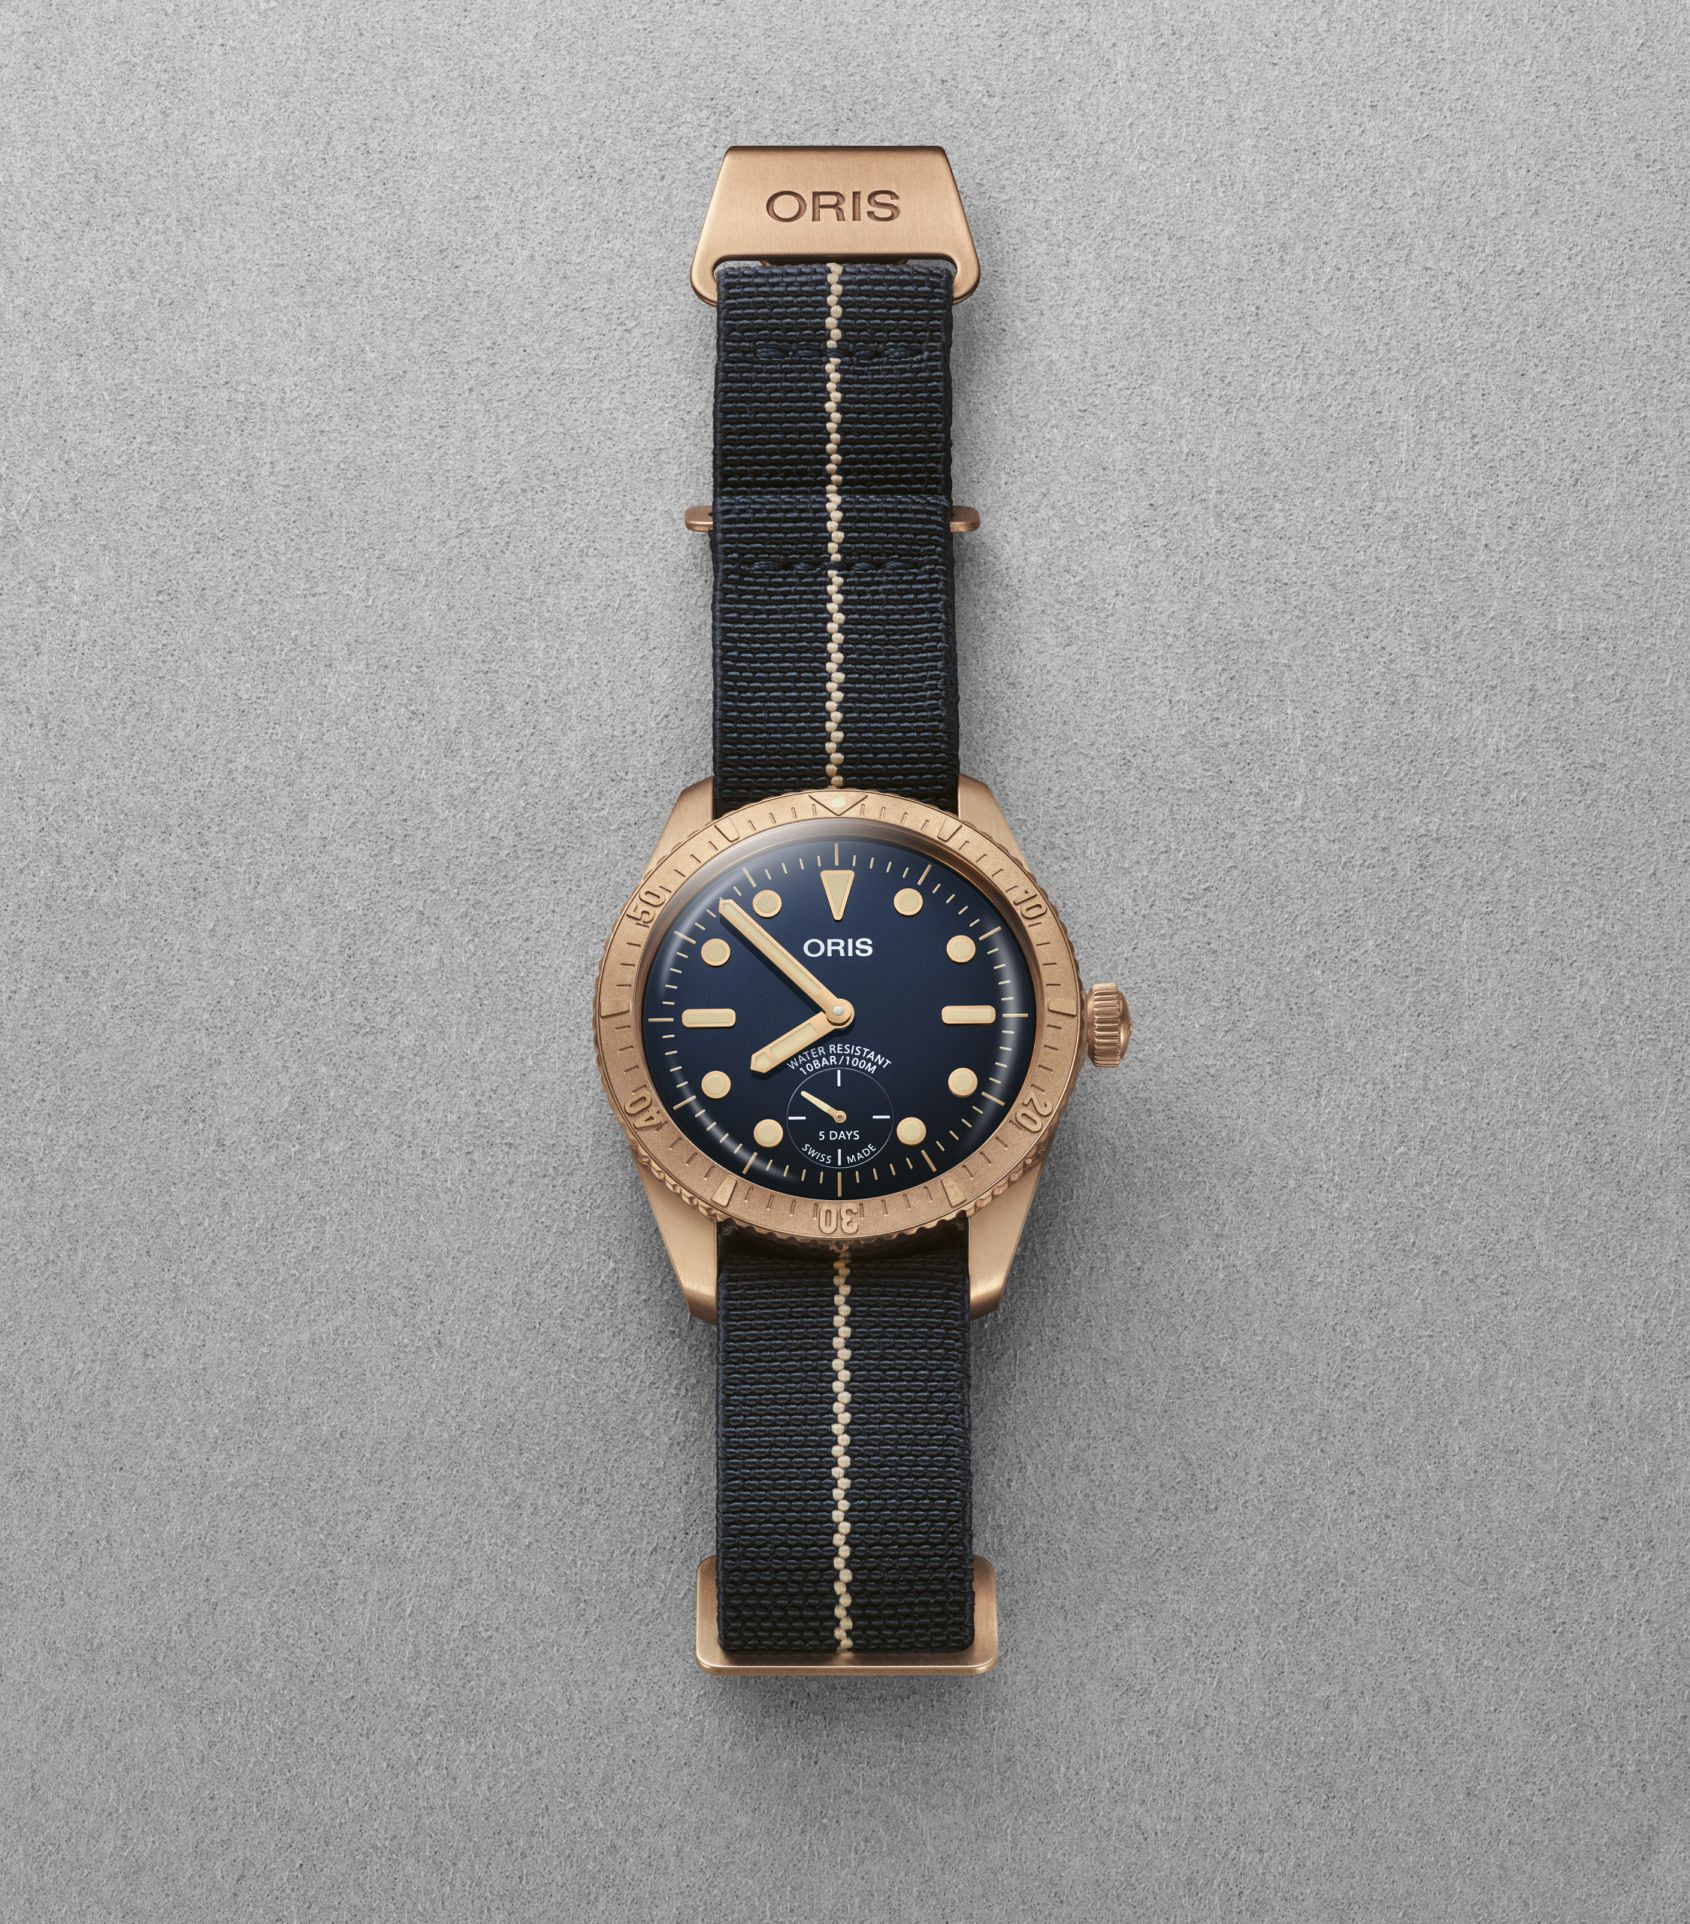 INTRODUCING: Yes, it's yet another bronze watch. But here's why the Oris Carl Brashear Cal. 401 Limited Edition matters…